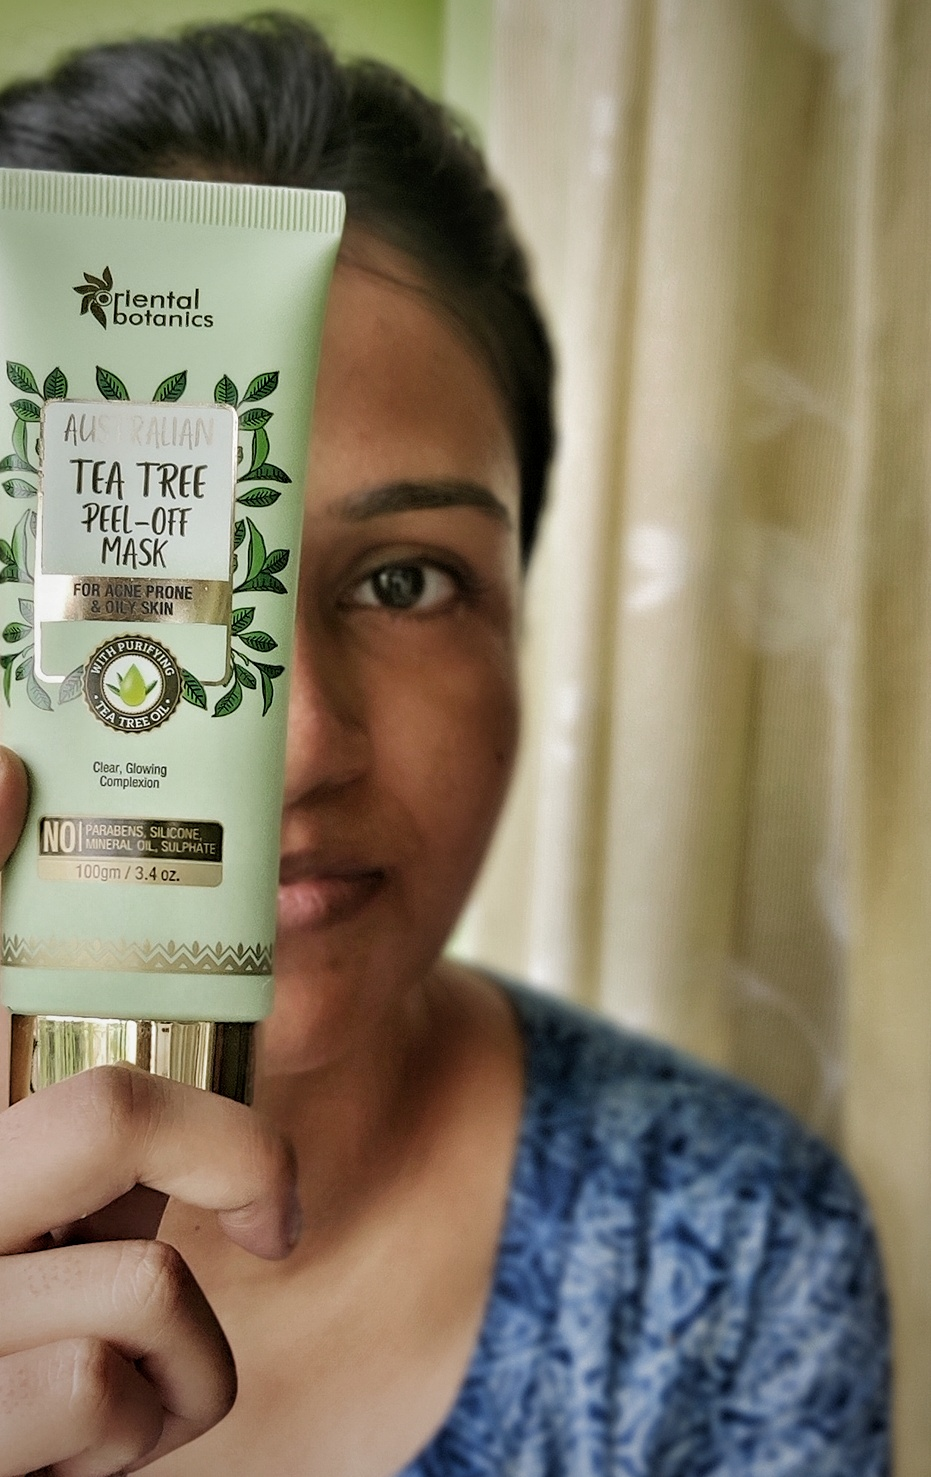 Oriental Botanics Australian Tea Tree Face Mask pic 1-Perfect for oily skin-By priya1990